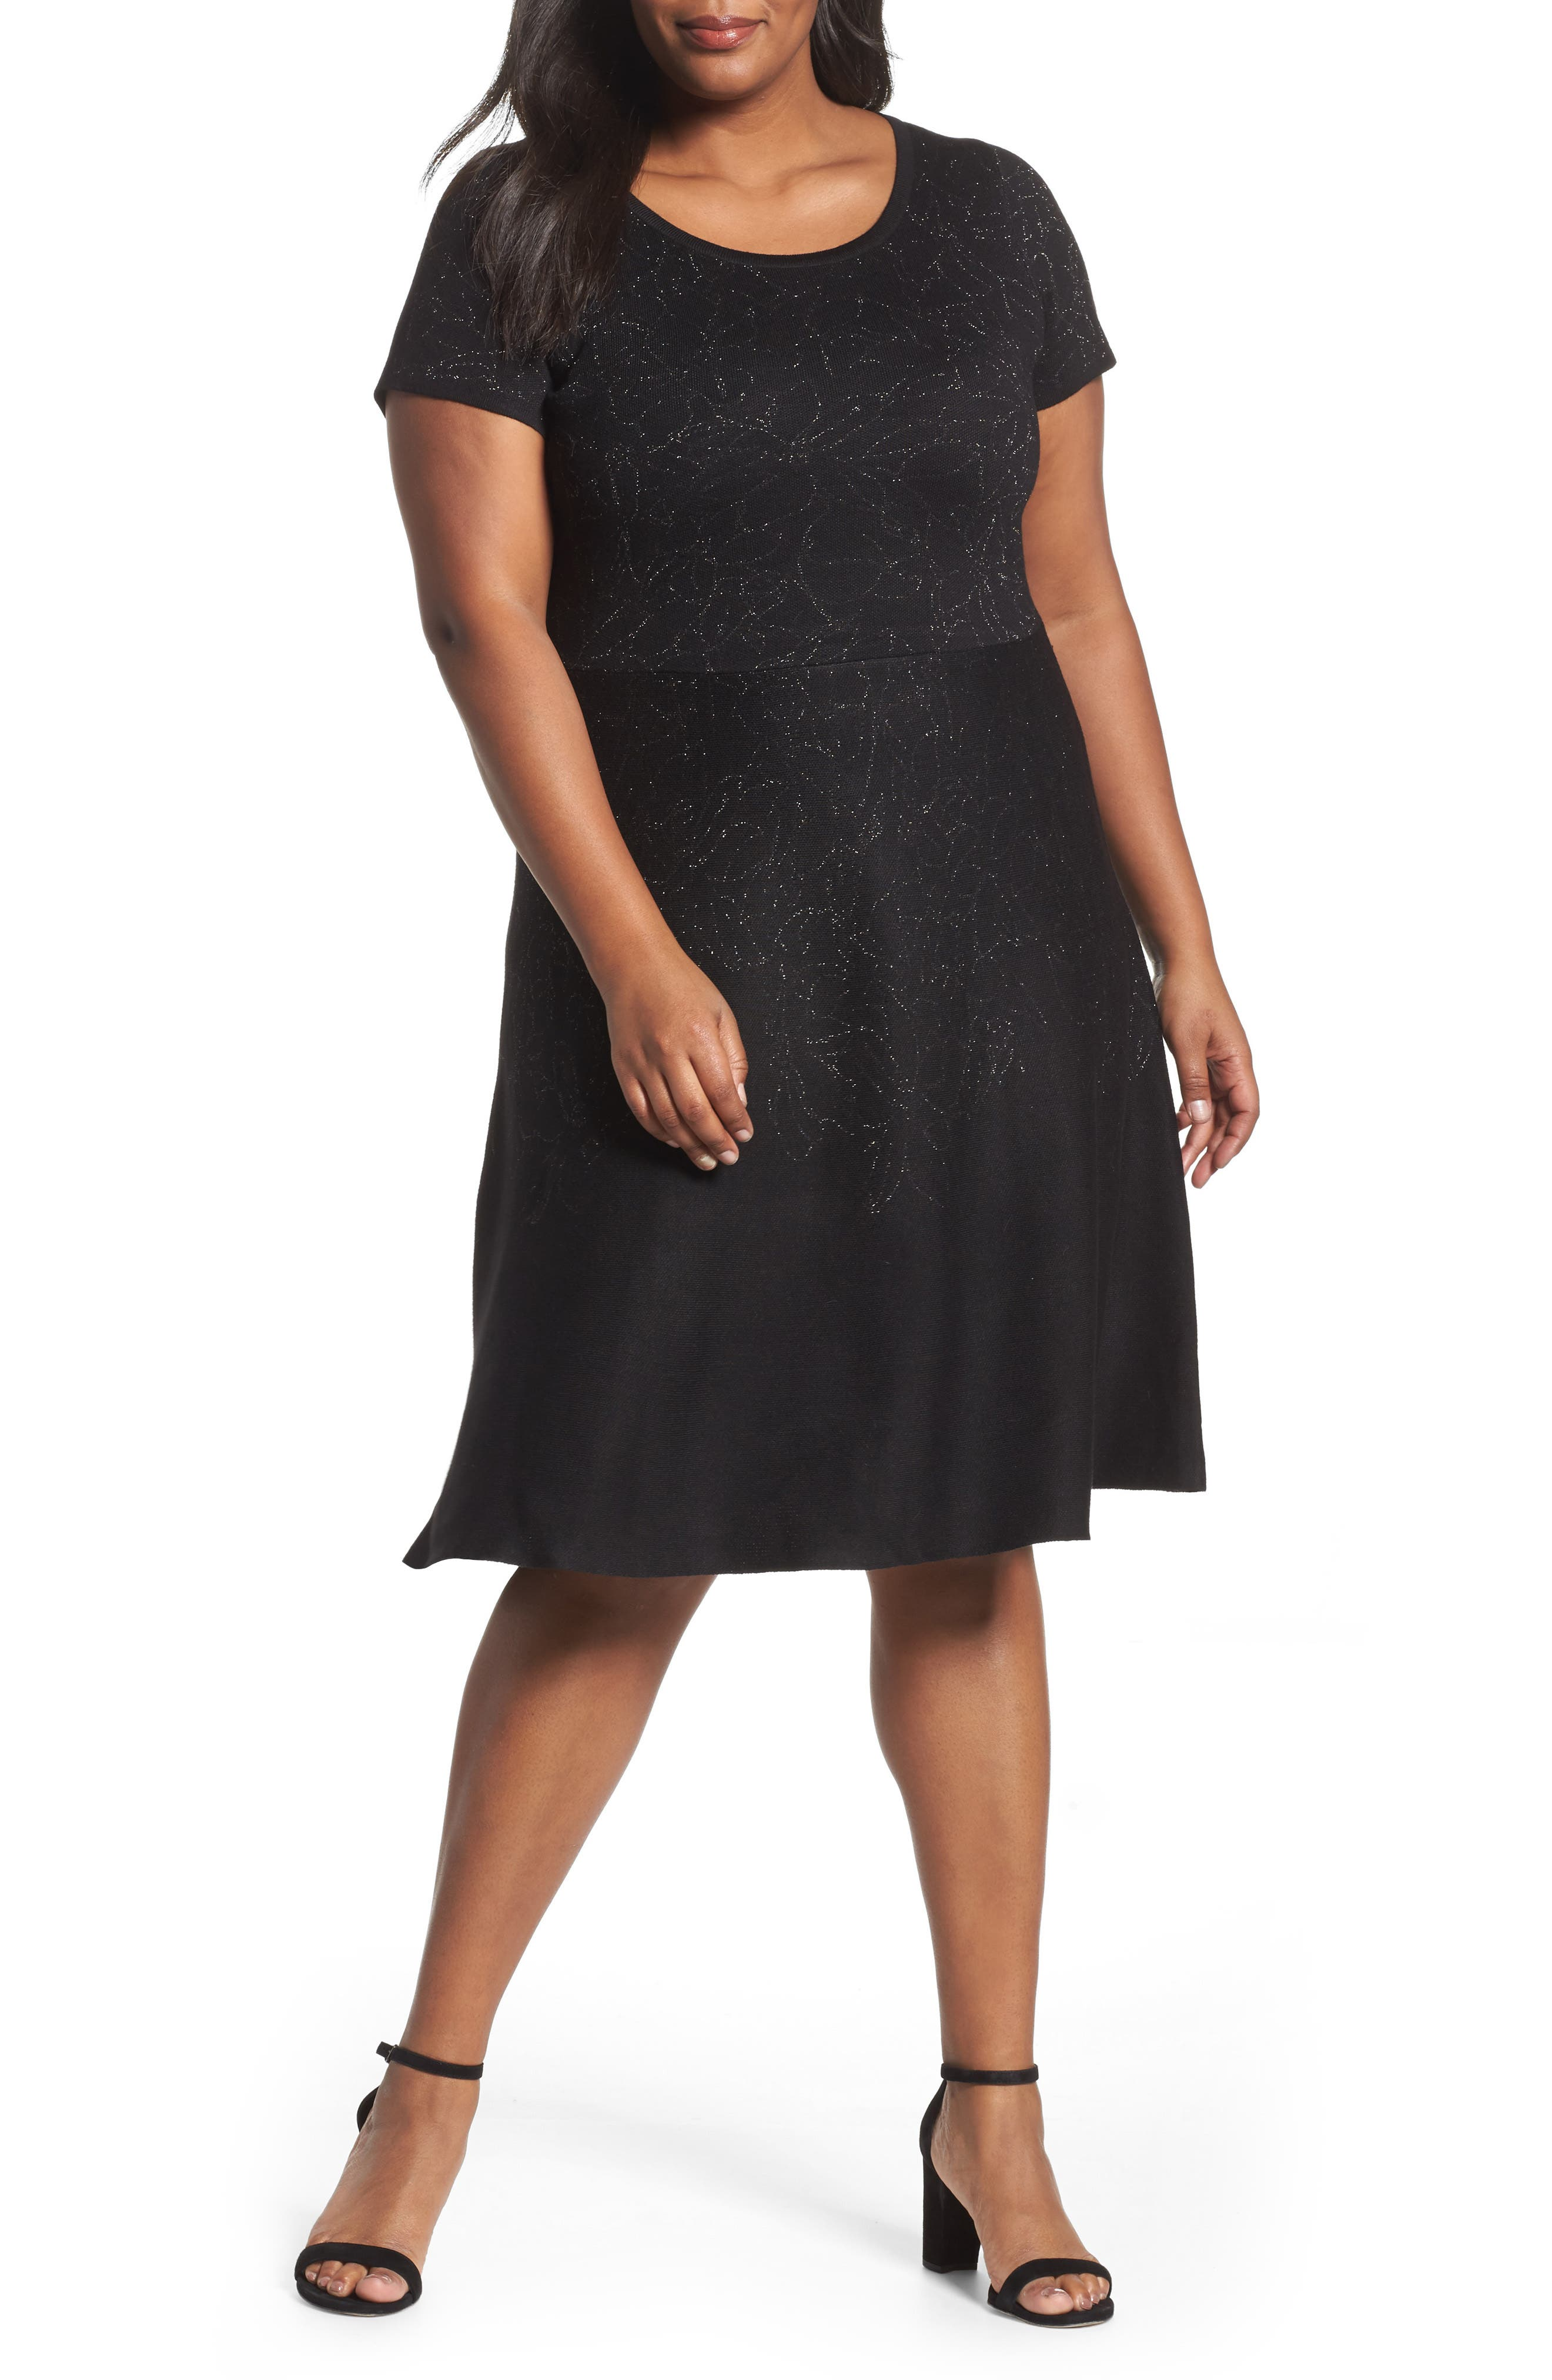 Taylor Dresses Metallic Knit Fit & Flare Dress (Plus Size)